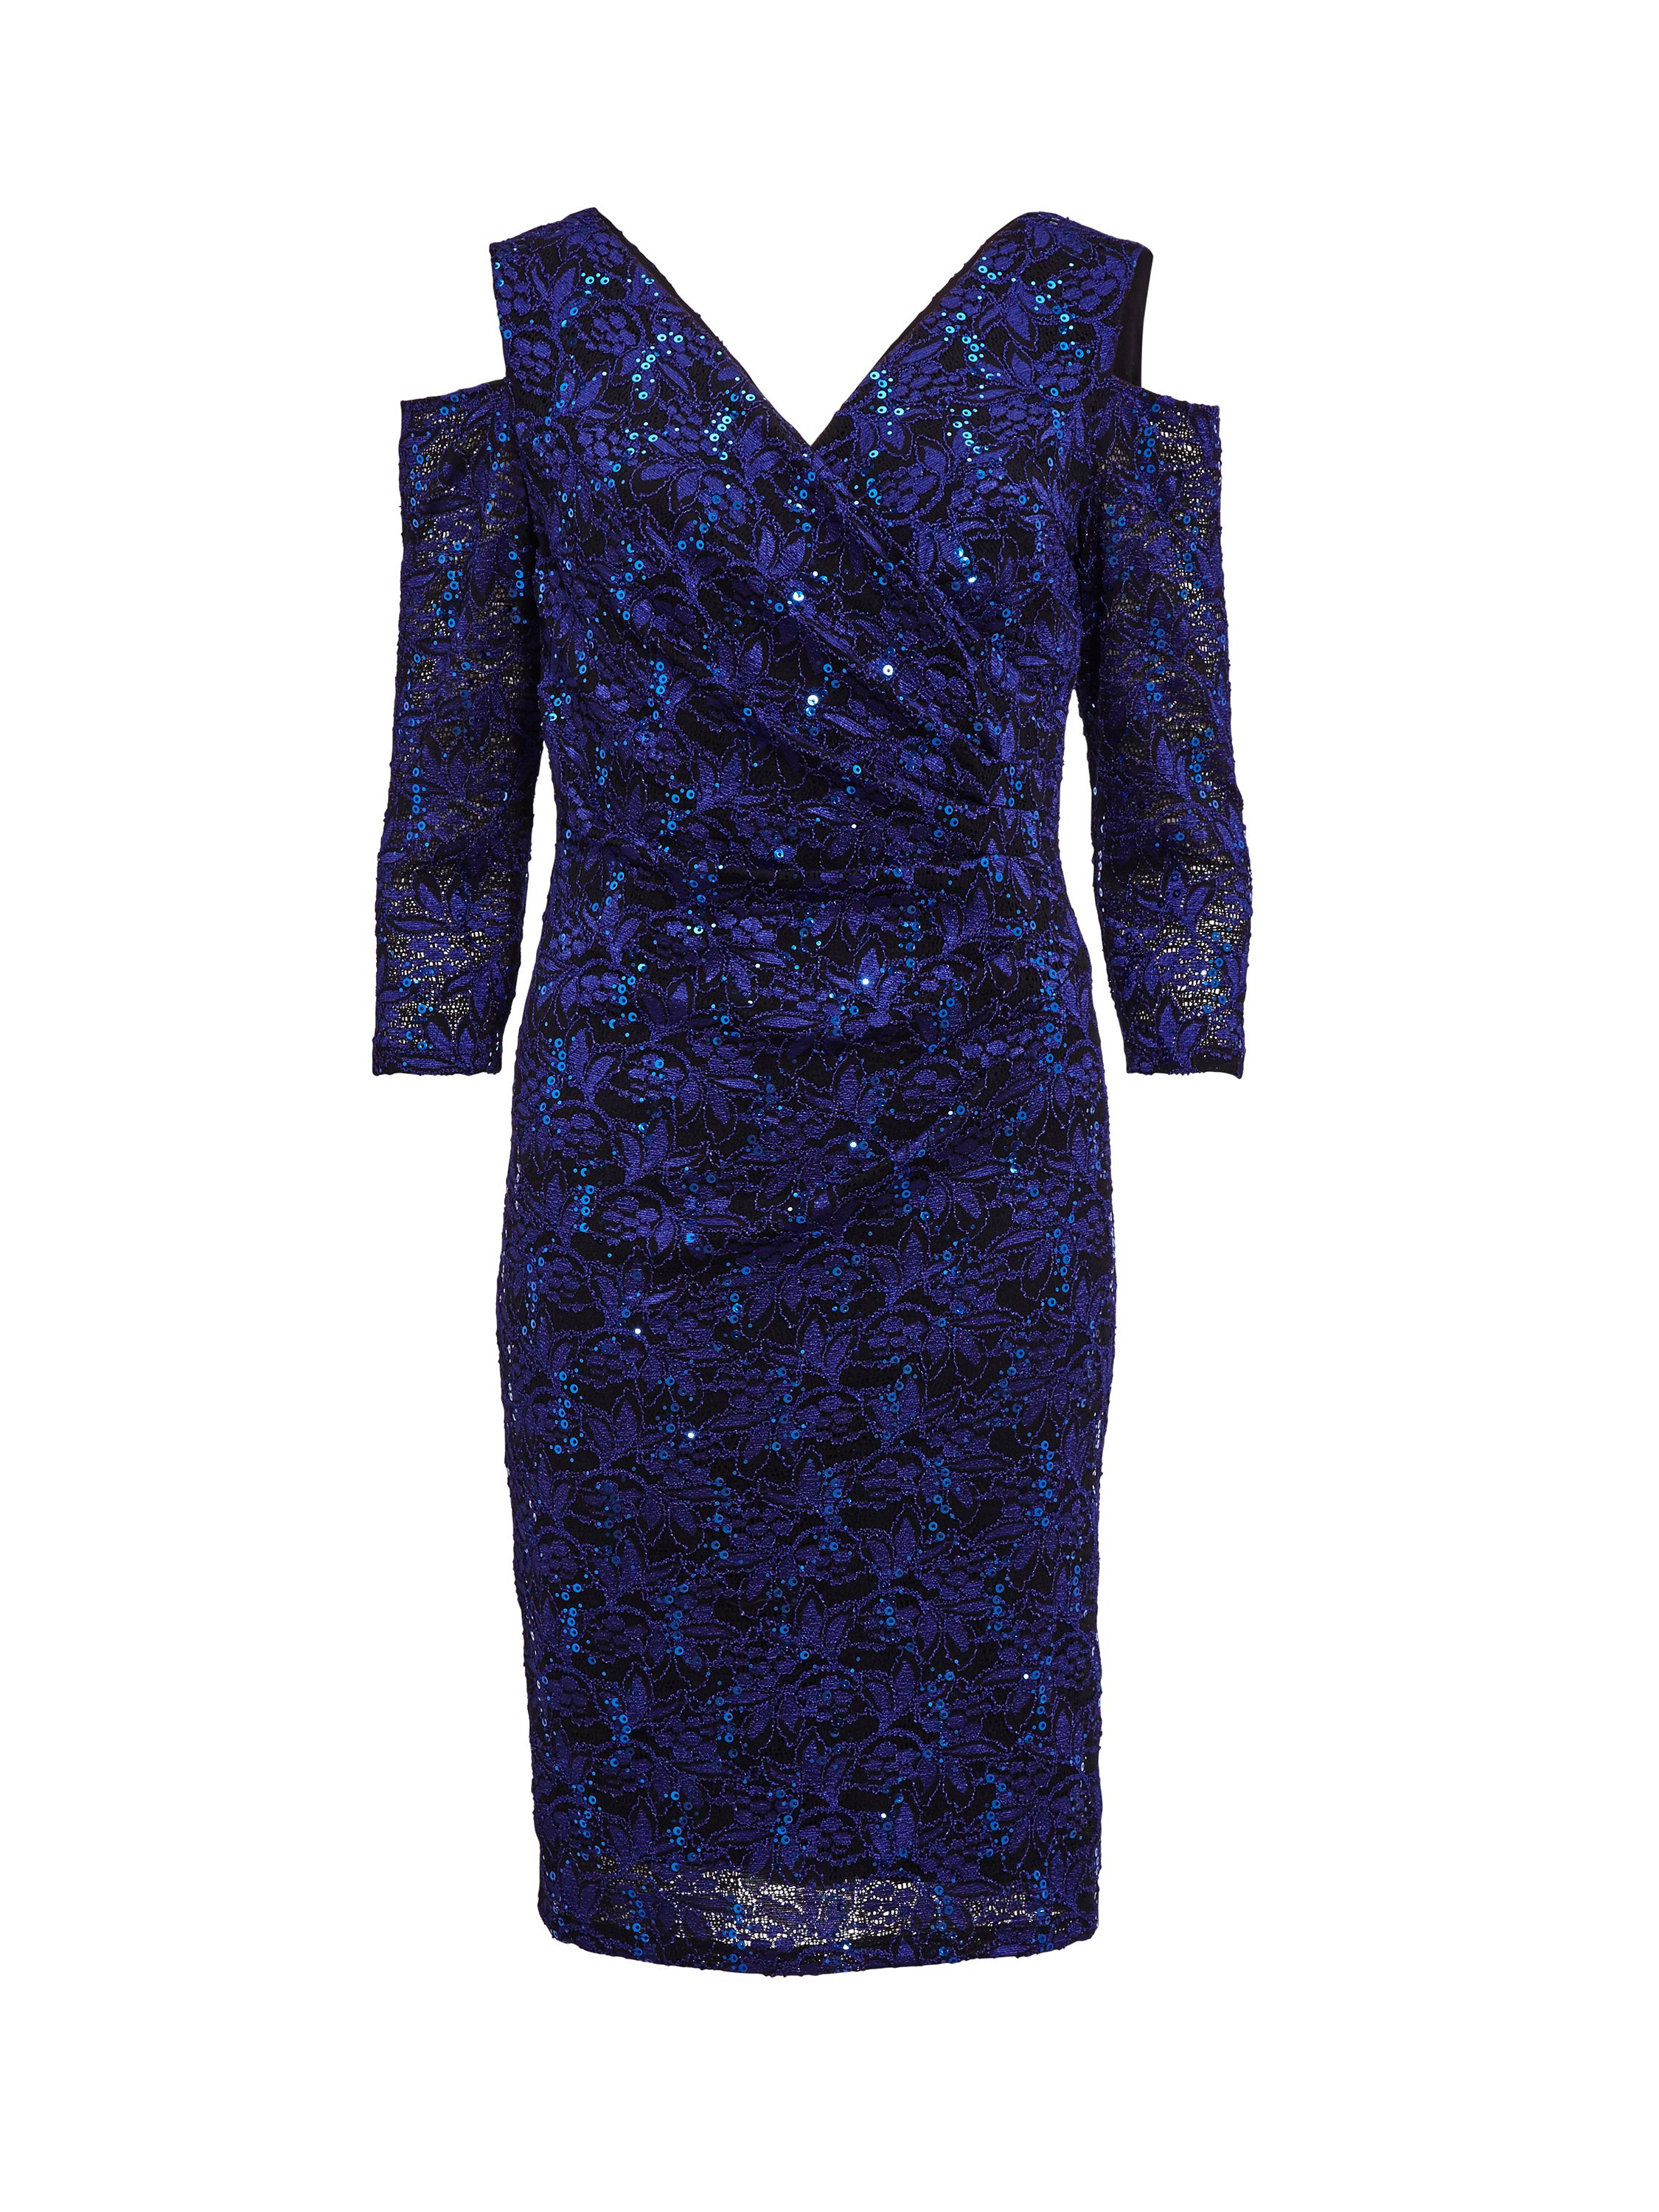 Gina Bacconi Cutout Shoulder Lace Dress, Blue